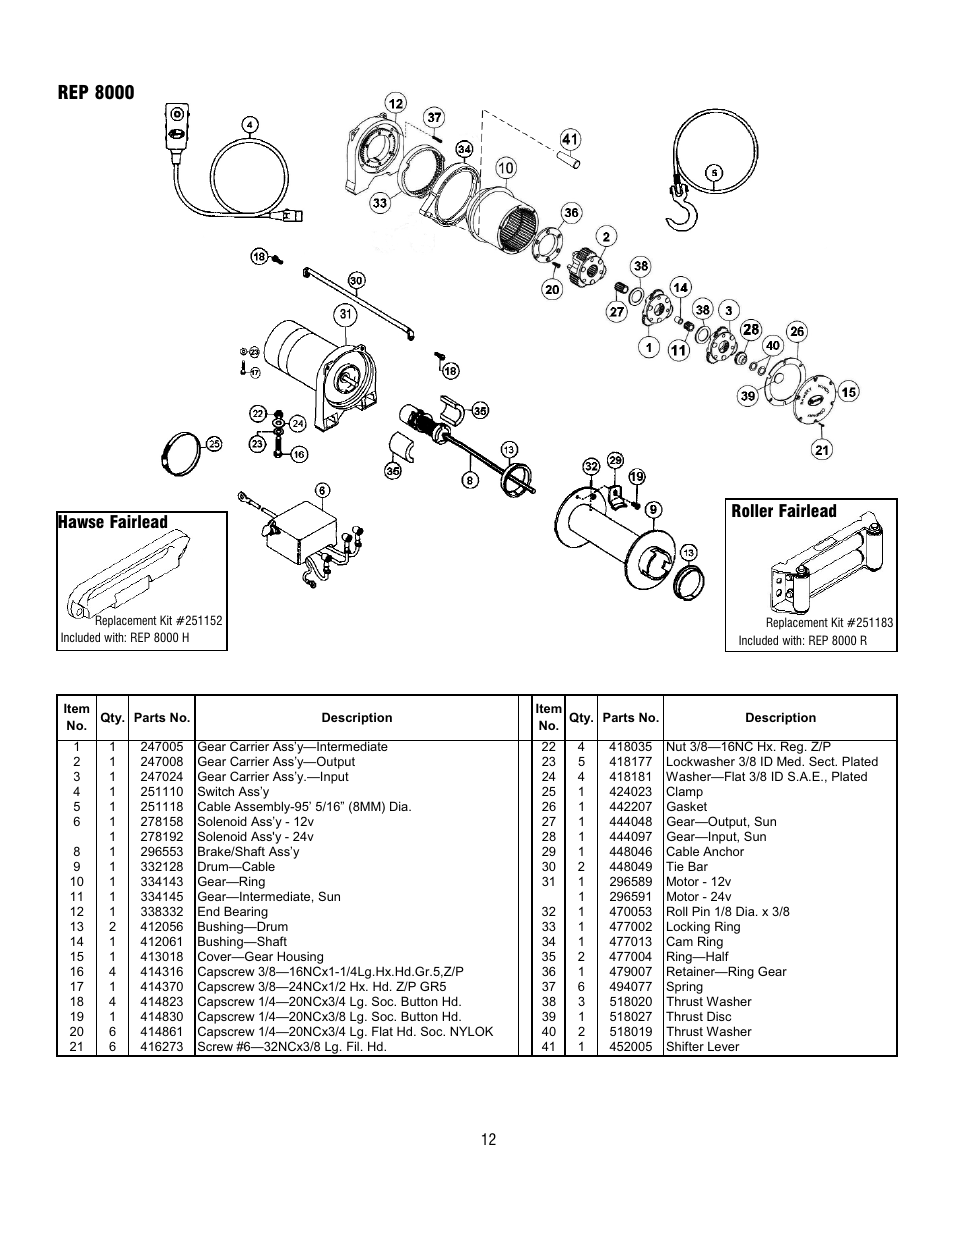 ramsey 12000 winch wiring diagram explore wiring diagram on the net • badlands 12000 winch wiring diagram imageresizertool com old ramsey winch wiring diagram warn solenoid wiring diagram